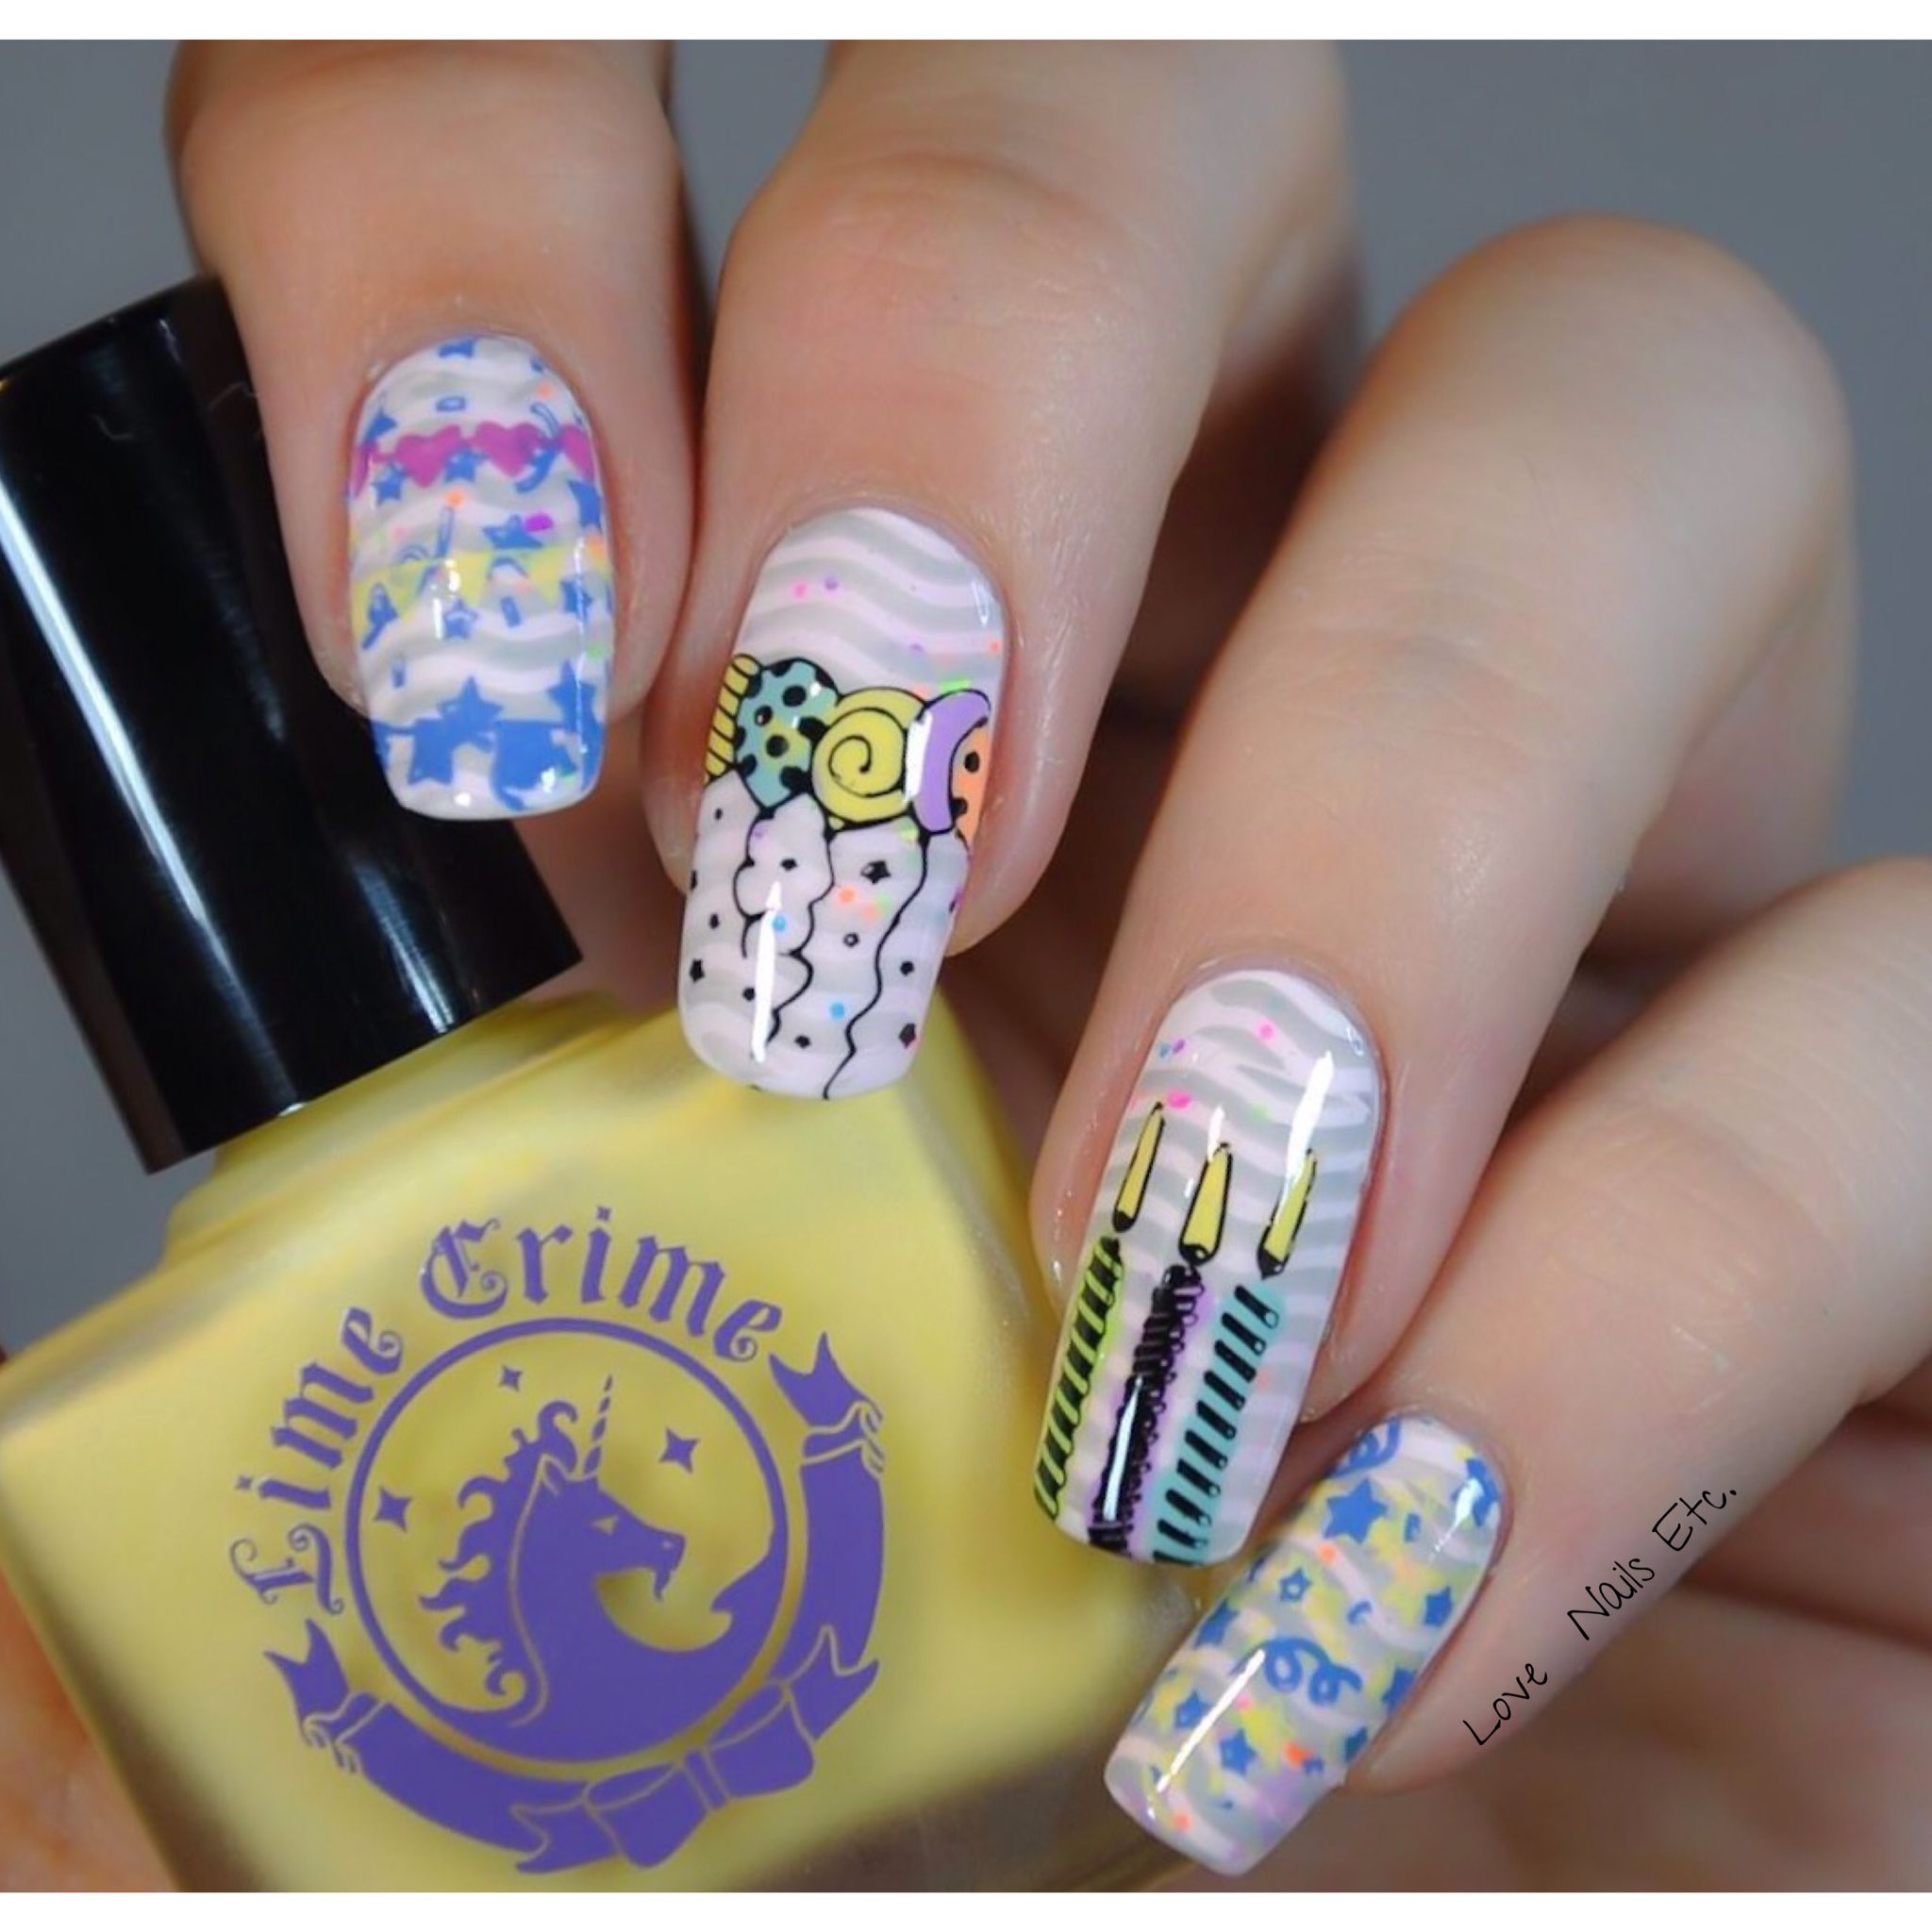 Stamping Master Stamping Nail art Happy birthday Lime crime Moyou ...